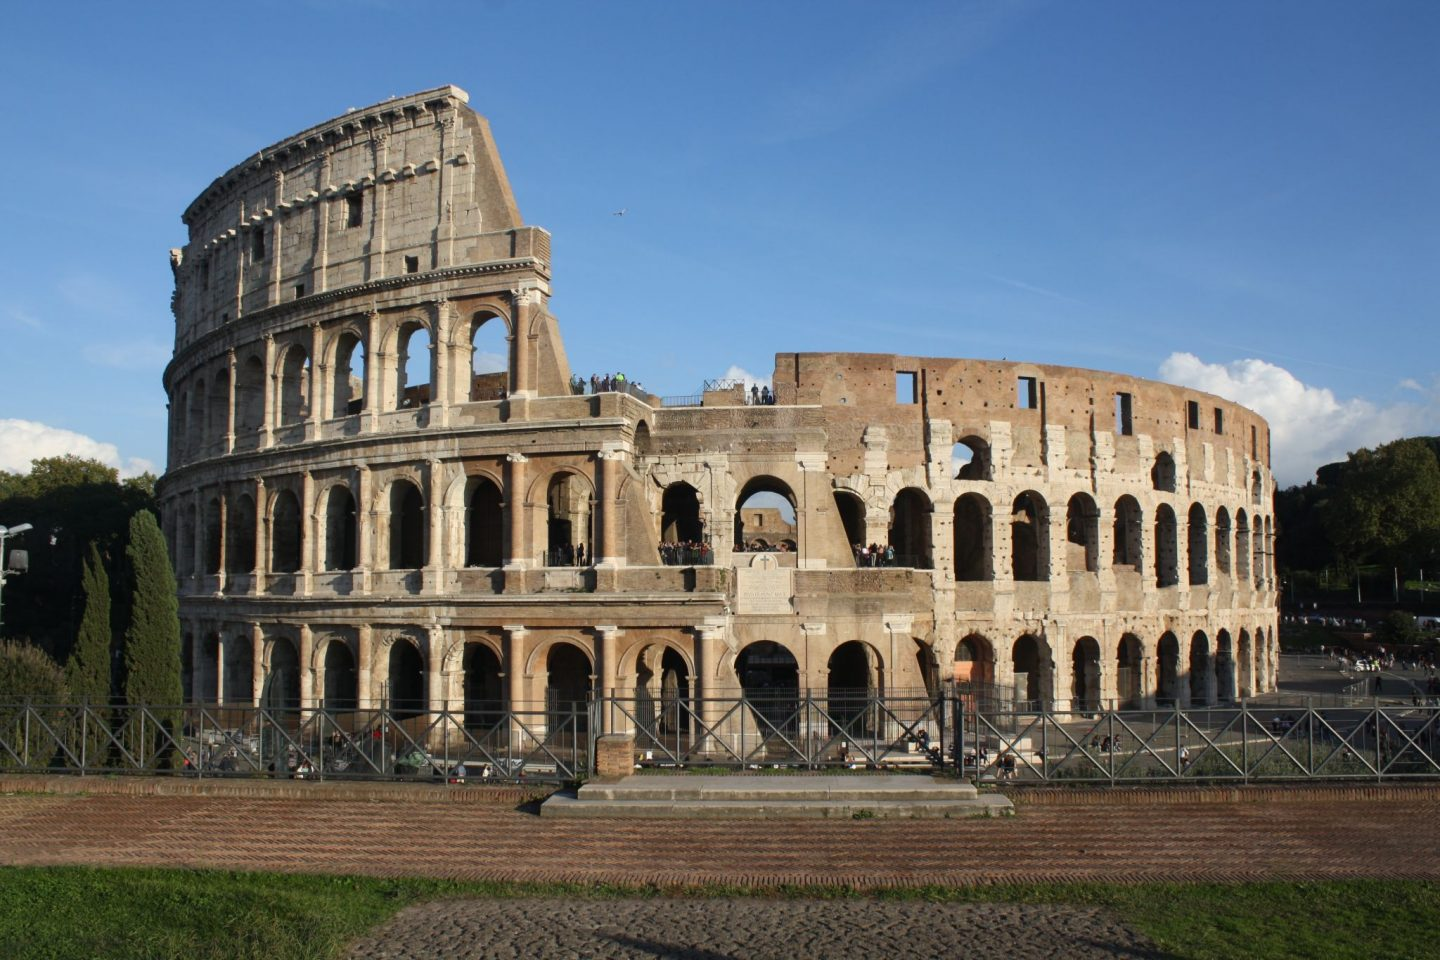 My Short Love letter to Rome, Thank You Roma